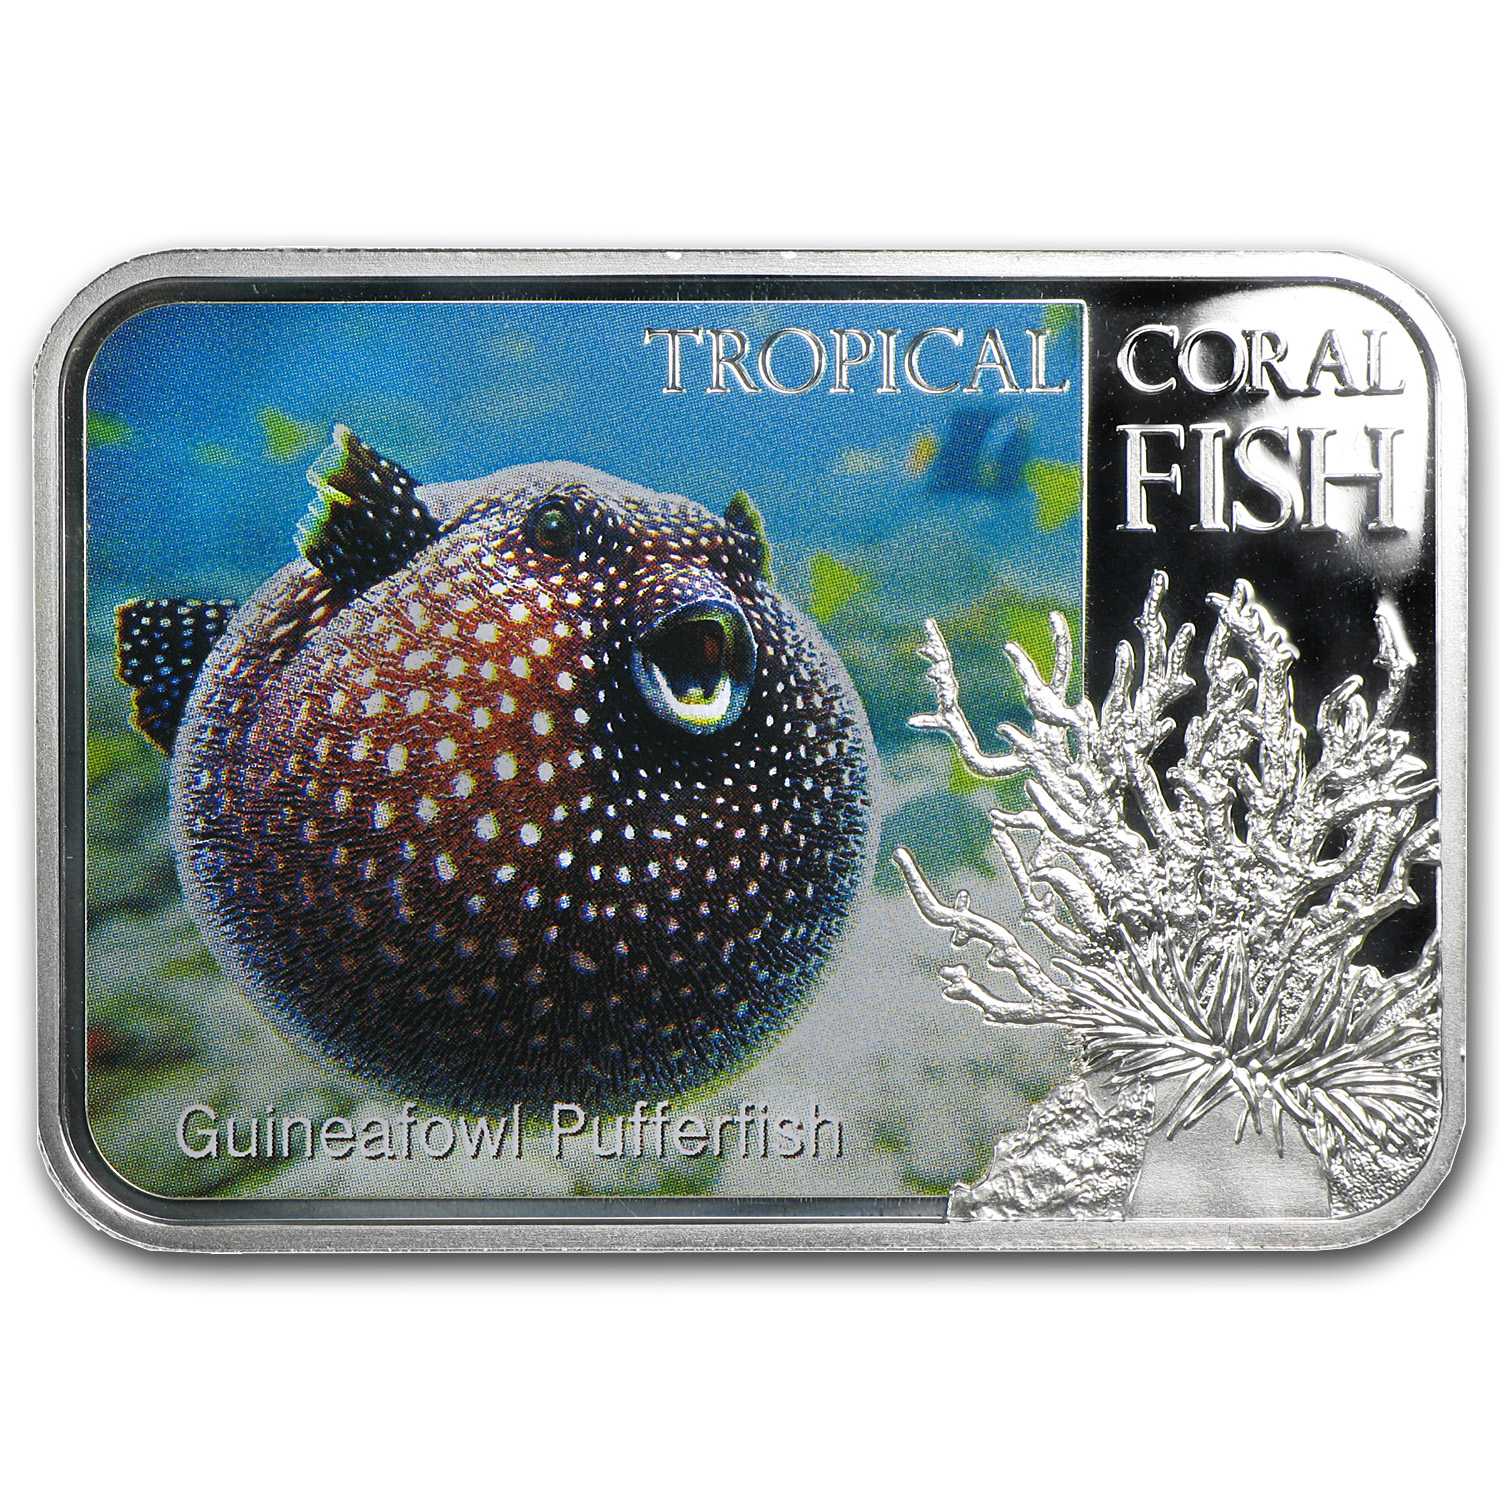 2013 Niue 1 oz Silver $1 Guineafowl Pufferfish Proof